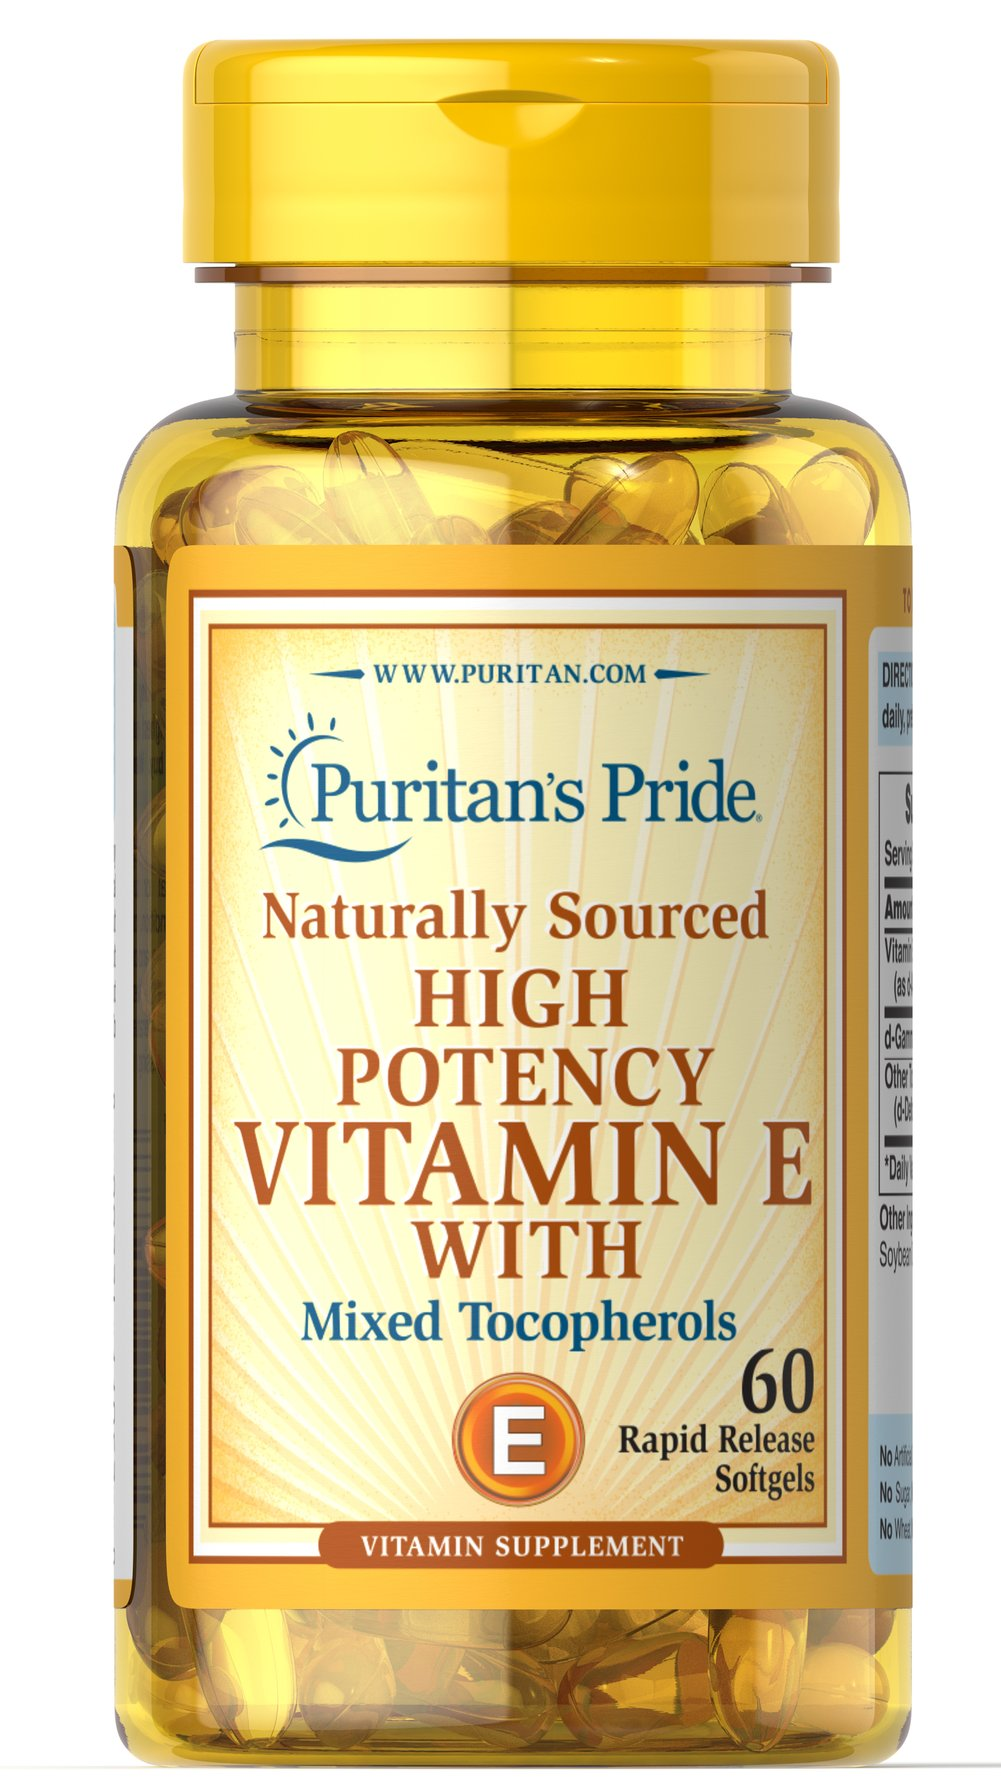 Vitamin E Complex High Gamma Natural <p>Superior Blend of <strong>d-Gamma Tocopherol</strong> with Other Vitamin E Tocopherols</p><p>Gamma-tocopherol is an important Vitamin E component.** High Gamma Tocopherol is a concentrated blend of both gamma and alpha-tocopherols (plus tocotrienols), which support heart health and have exceptional antioxidant properties.**</p> 60 Softgels  $29.89